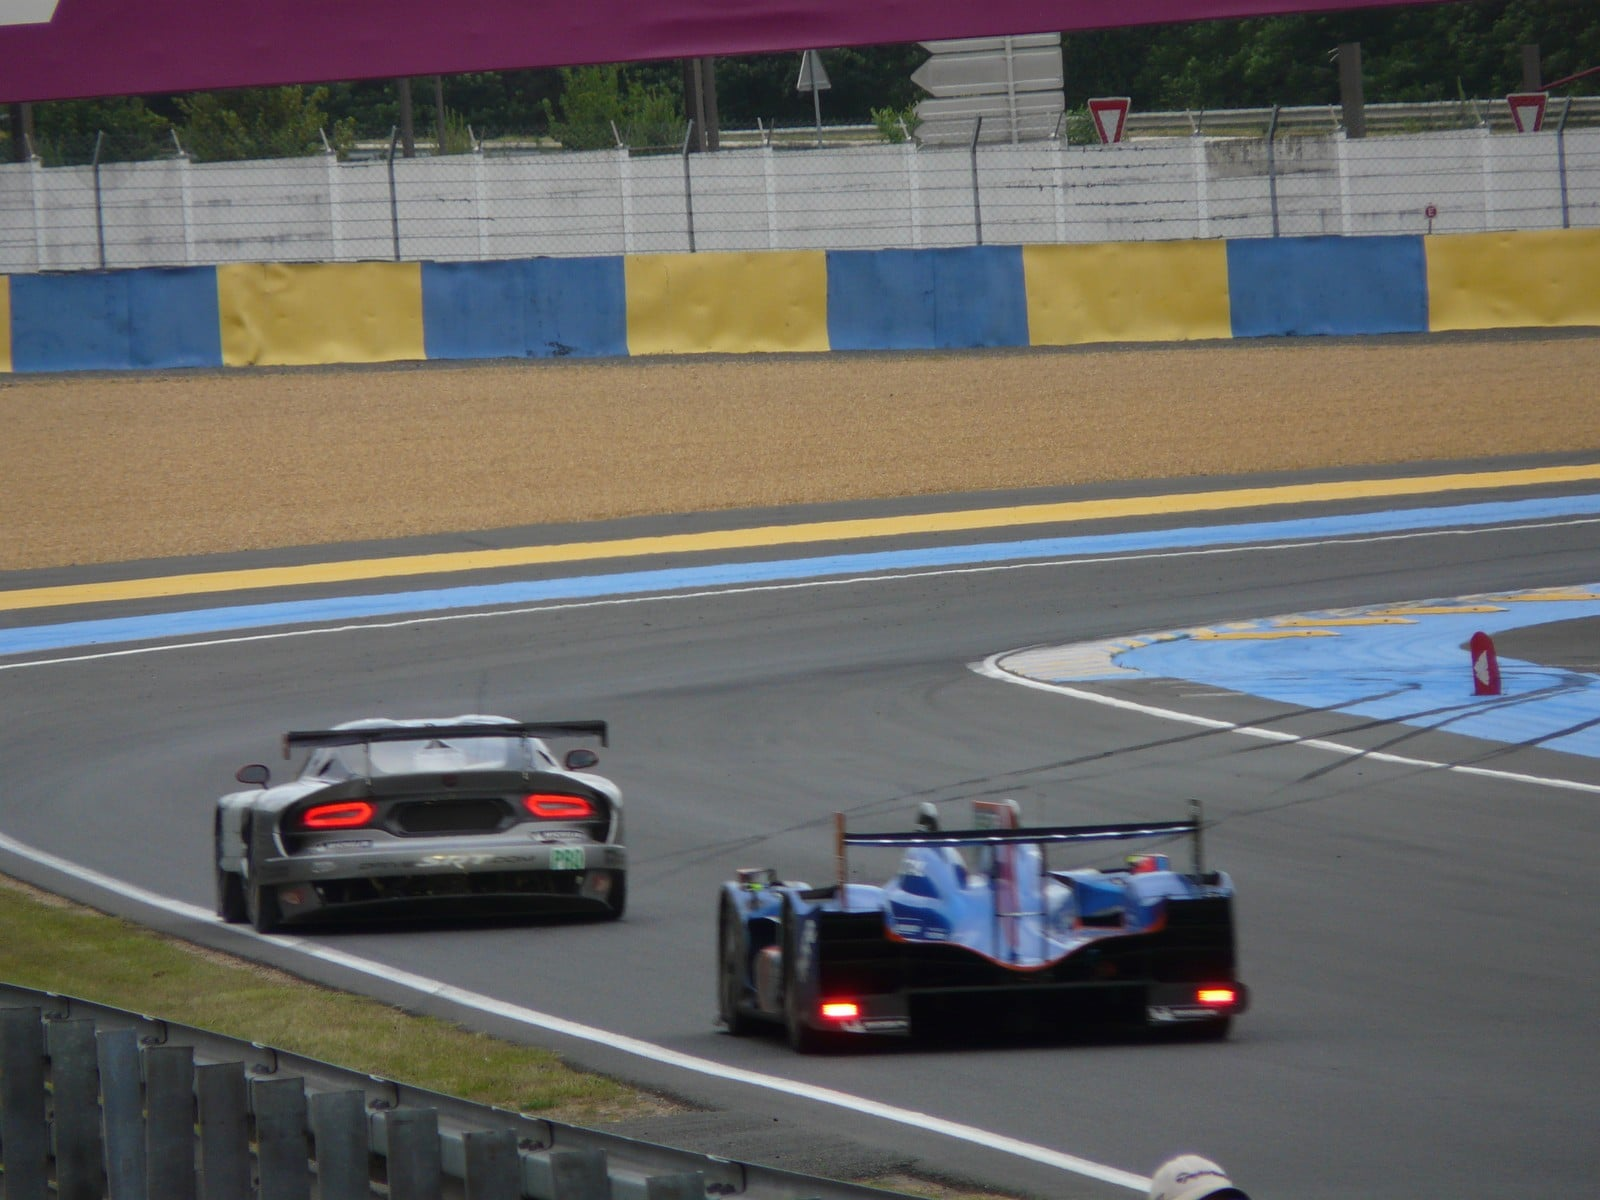 reportage aux 24h du mans aux c t s d 39 alpine. Black Bedroom Furniture Sets. Home Design Ideas